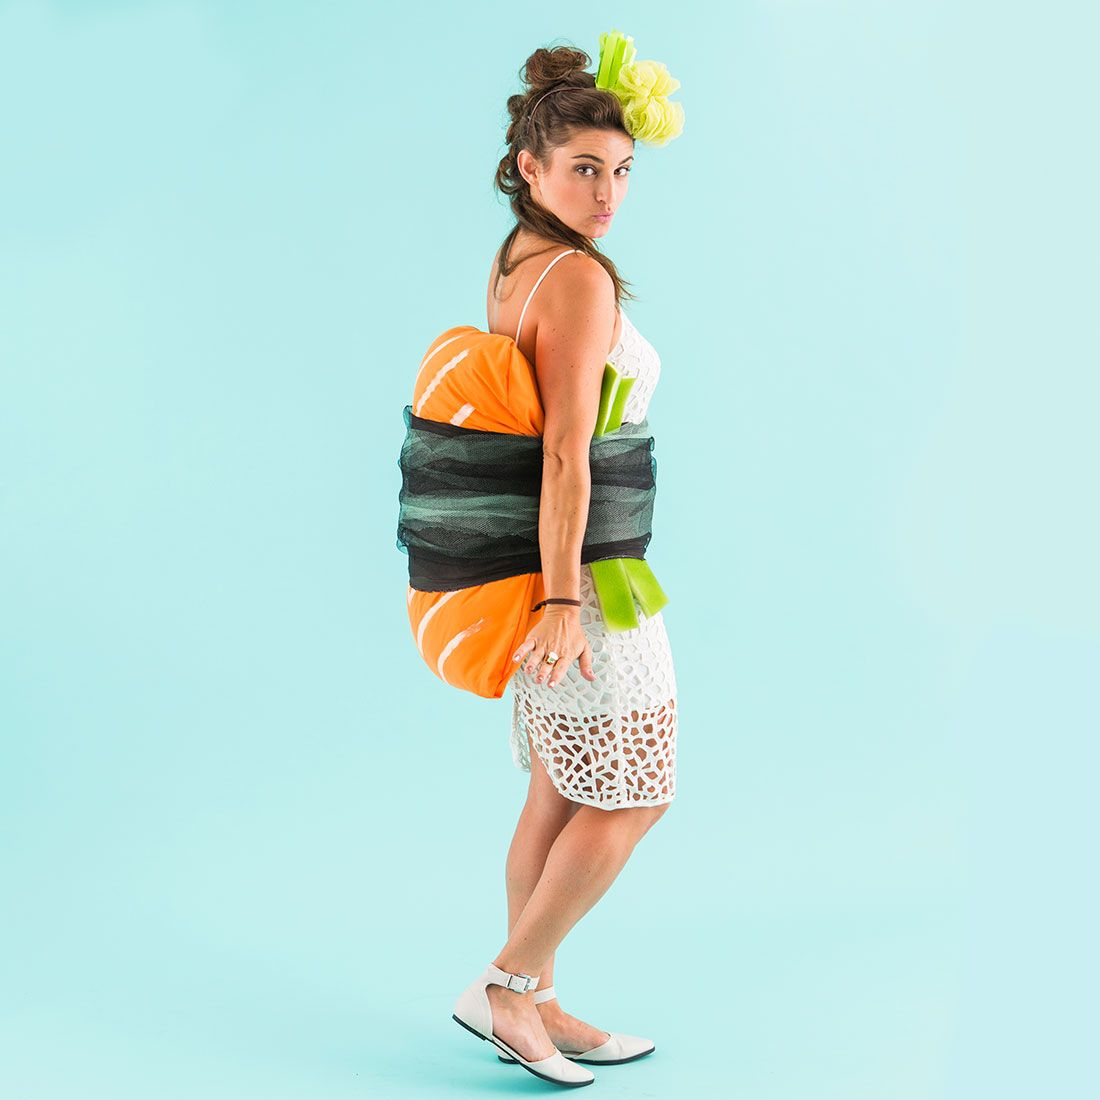 The dress halloween costume - Dress Up Like Sushi For The Best Group Halloween Costume Ever